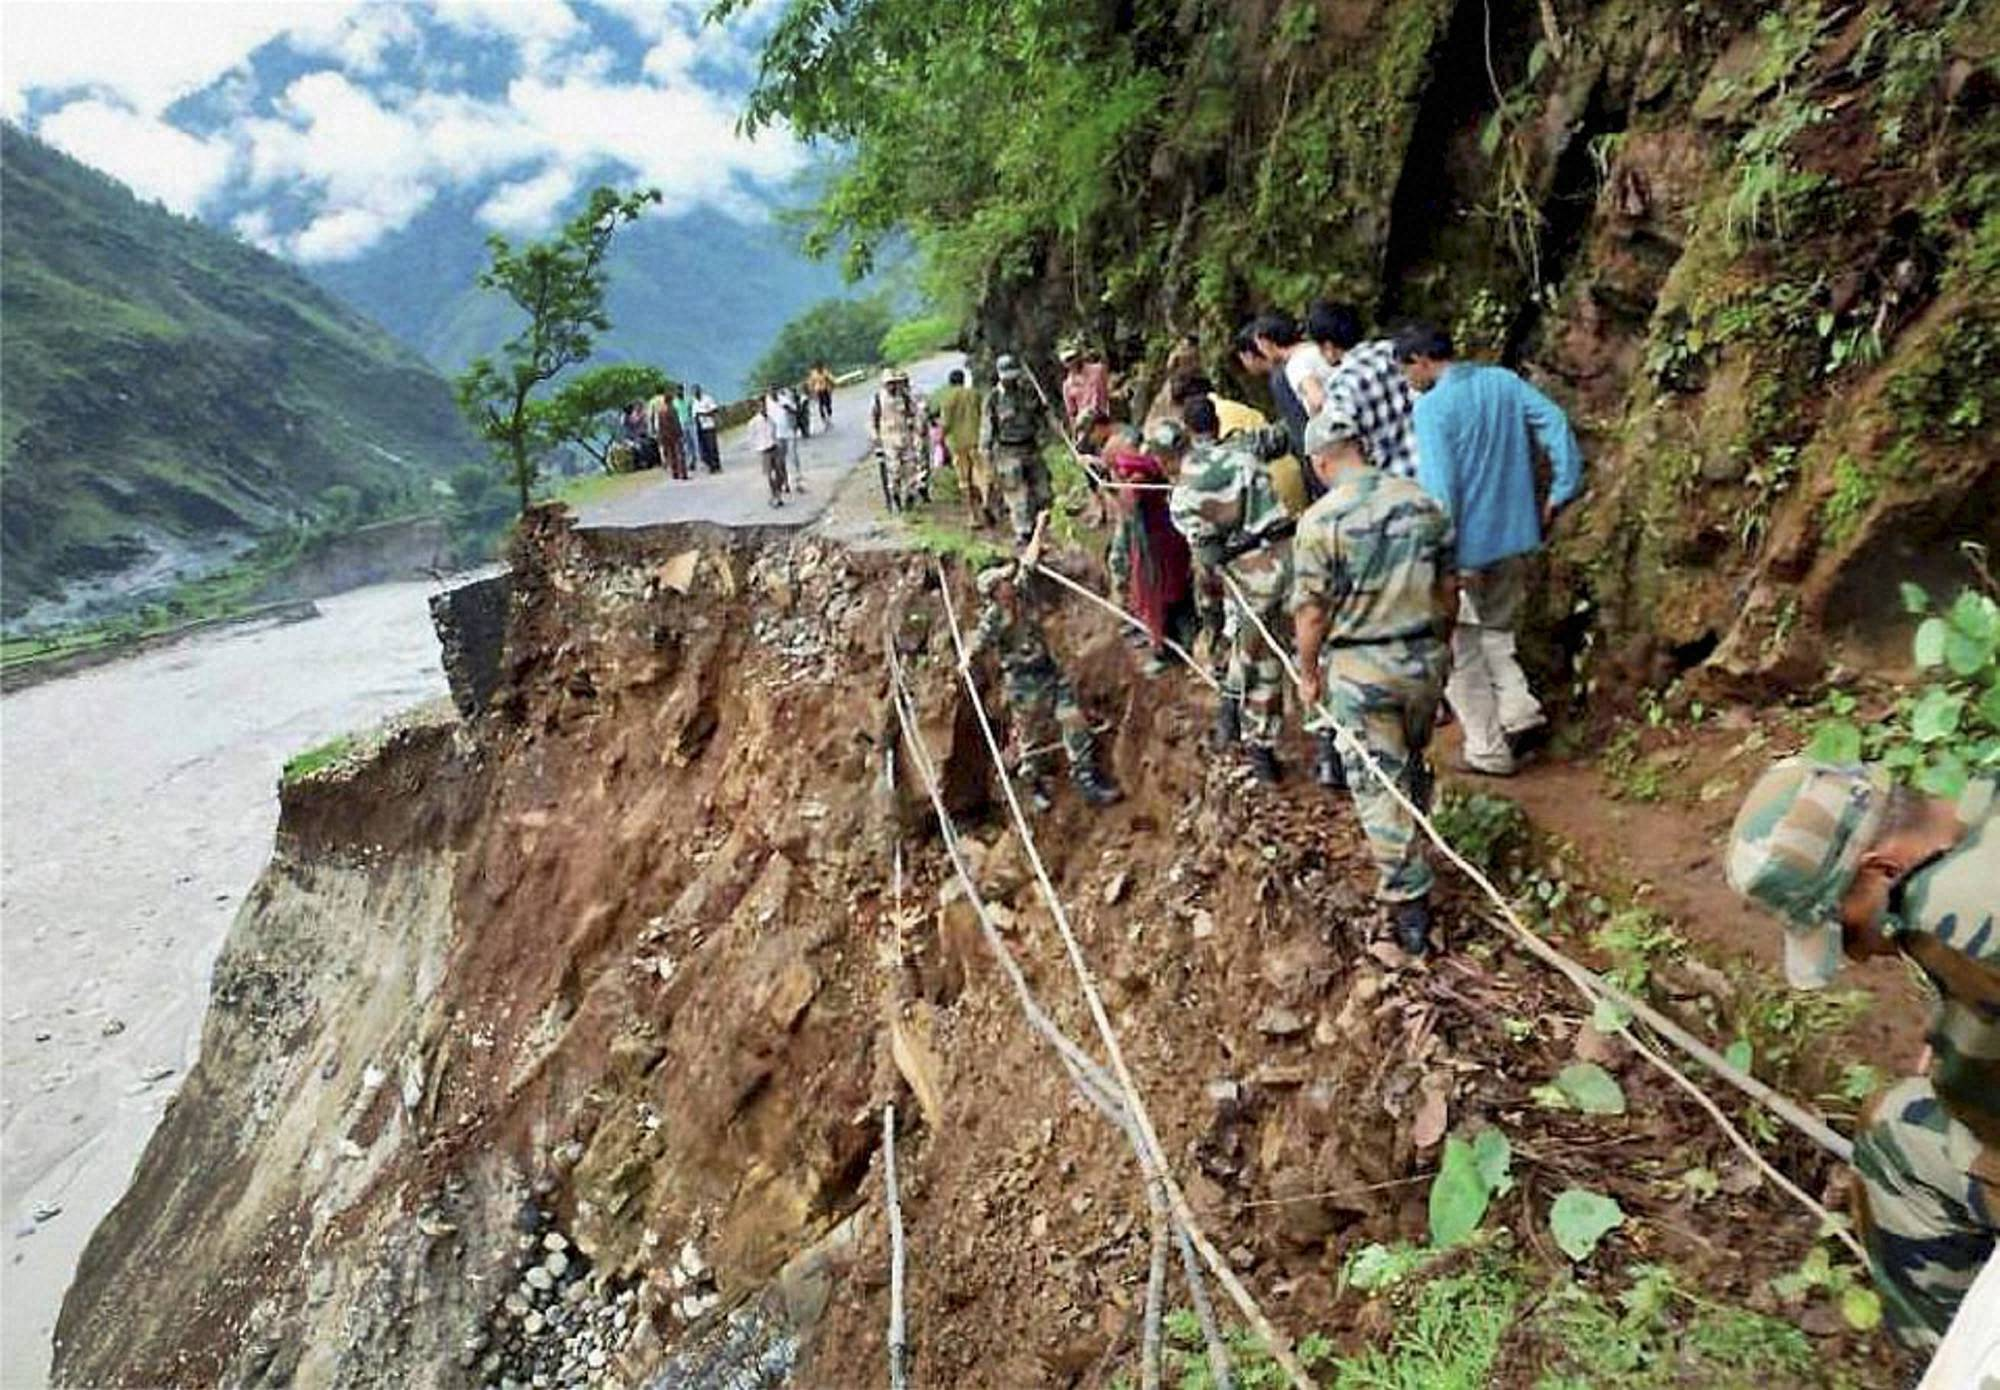 Army personnel carry out rescue work near a washed off road at flood-hit Hemkund in Chamoli district.